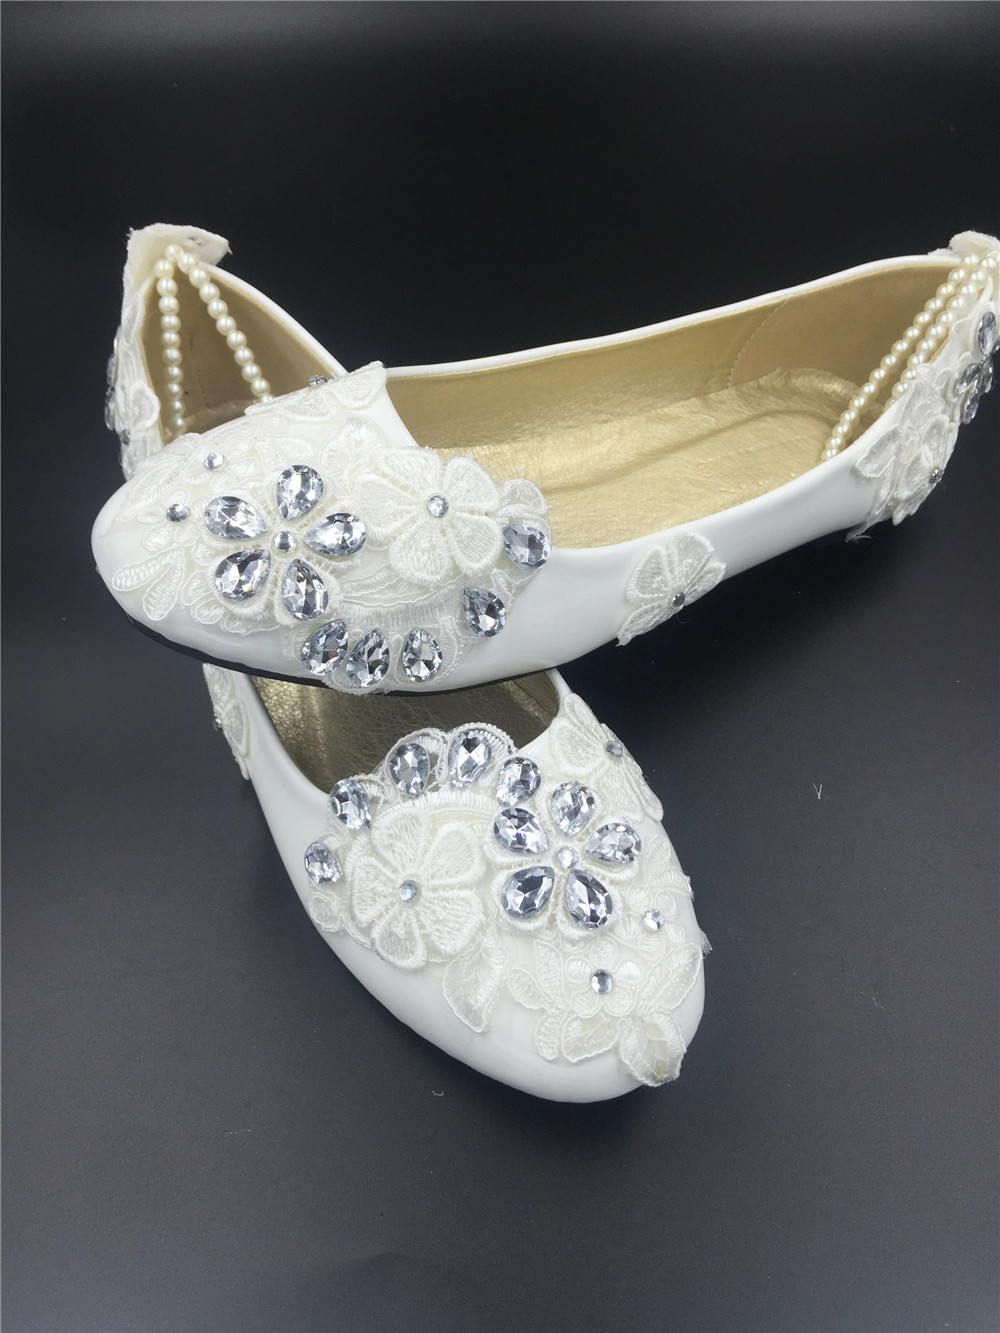 Primary image for Spring Wedding Shoes/Spring Bridal Flats Shoes/Bride Shoes/Bridesmaids Shoes